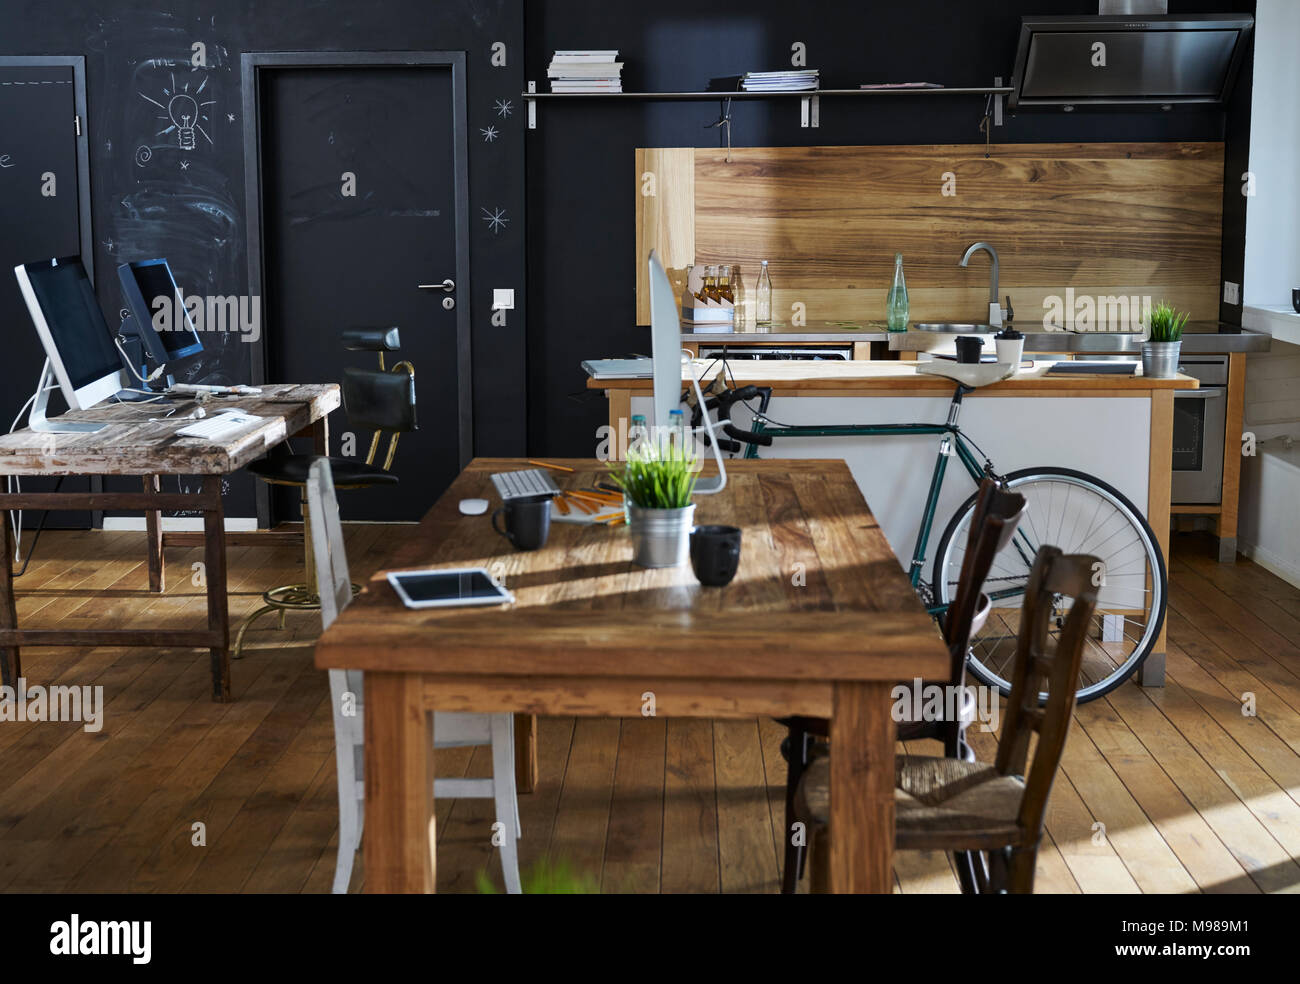 Modern office interior with kitchen - Stock Image